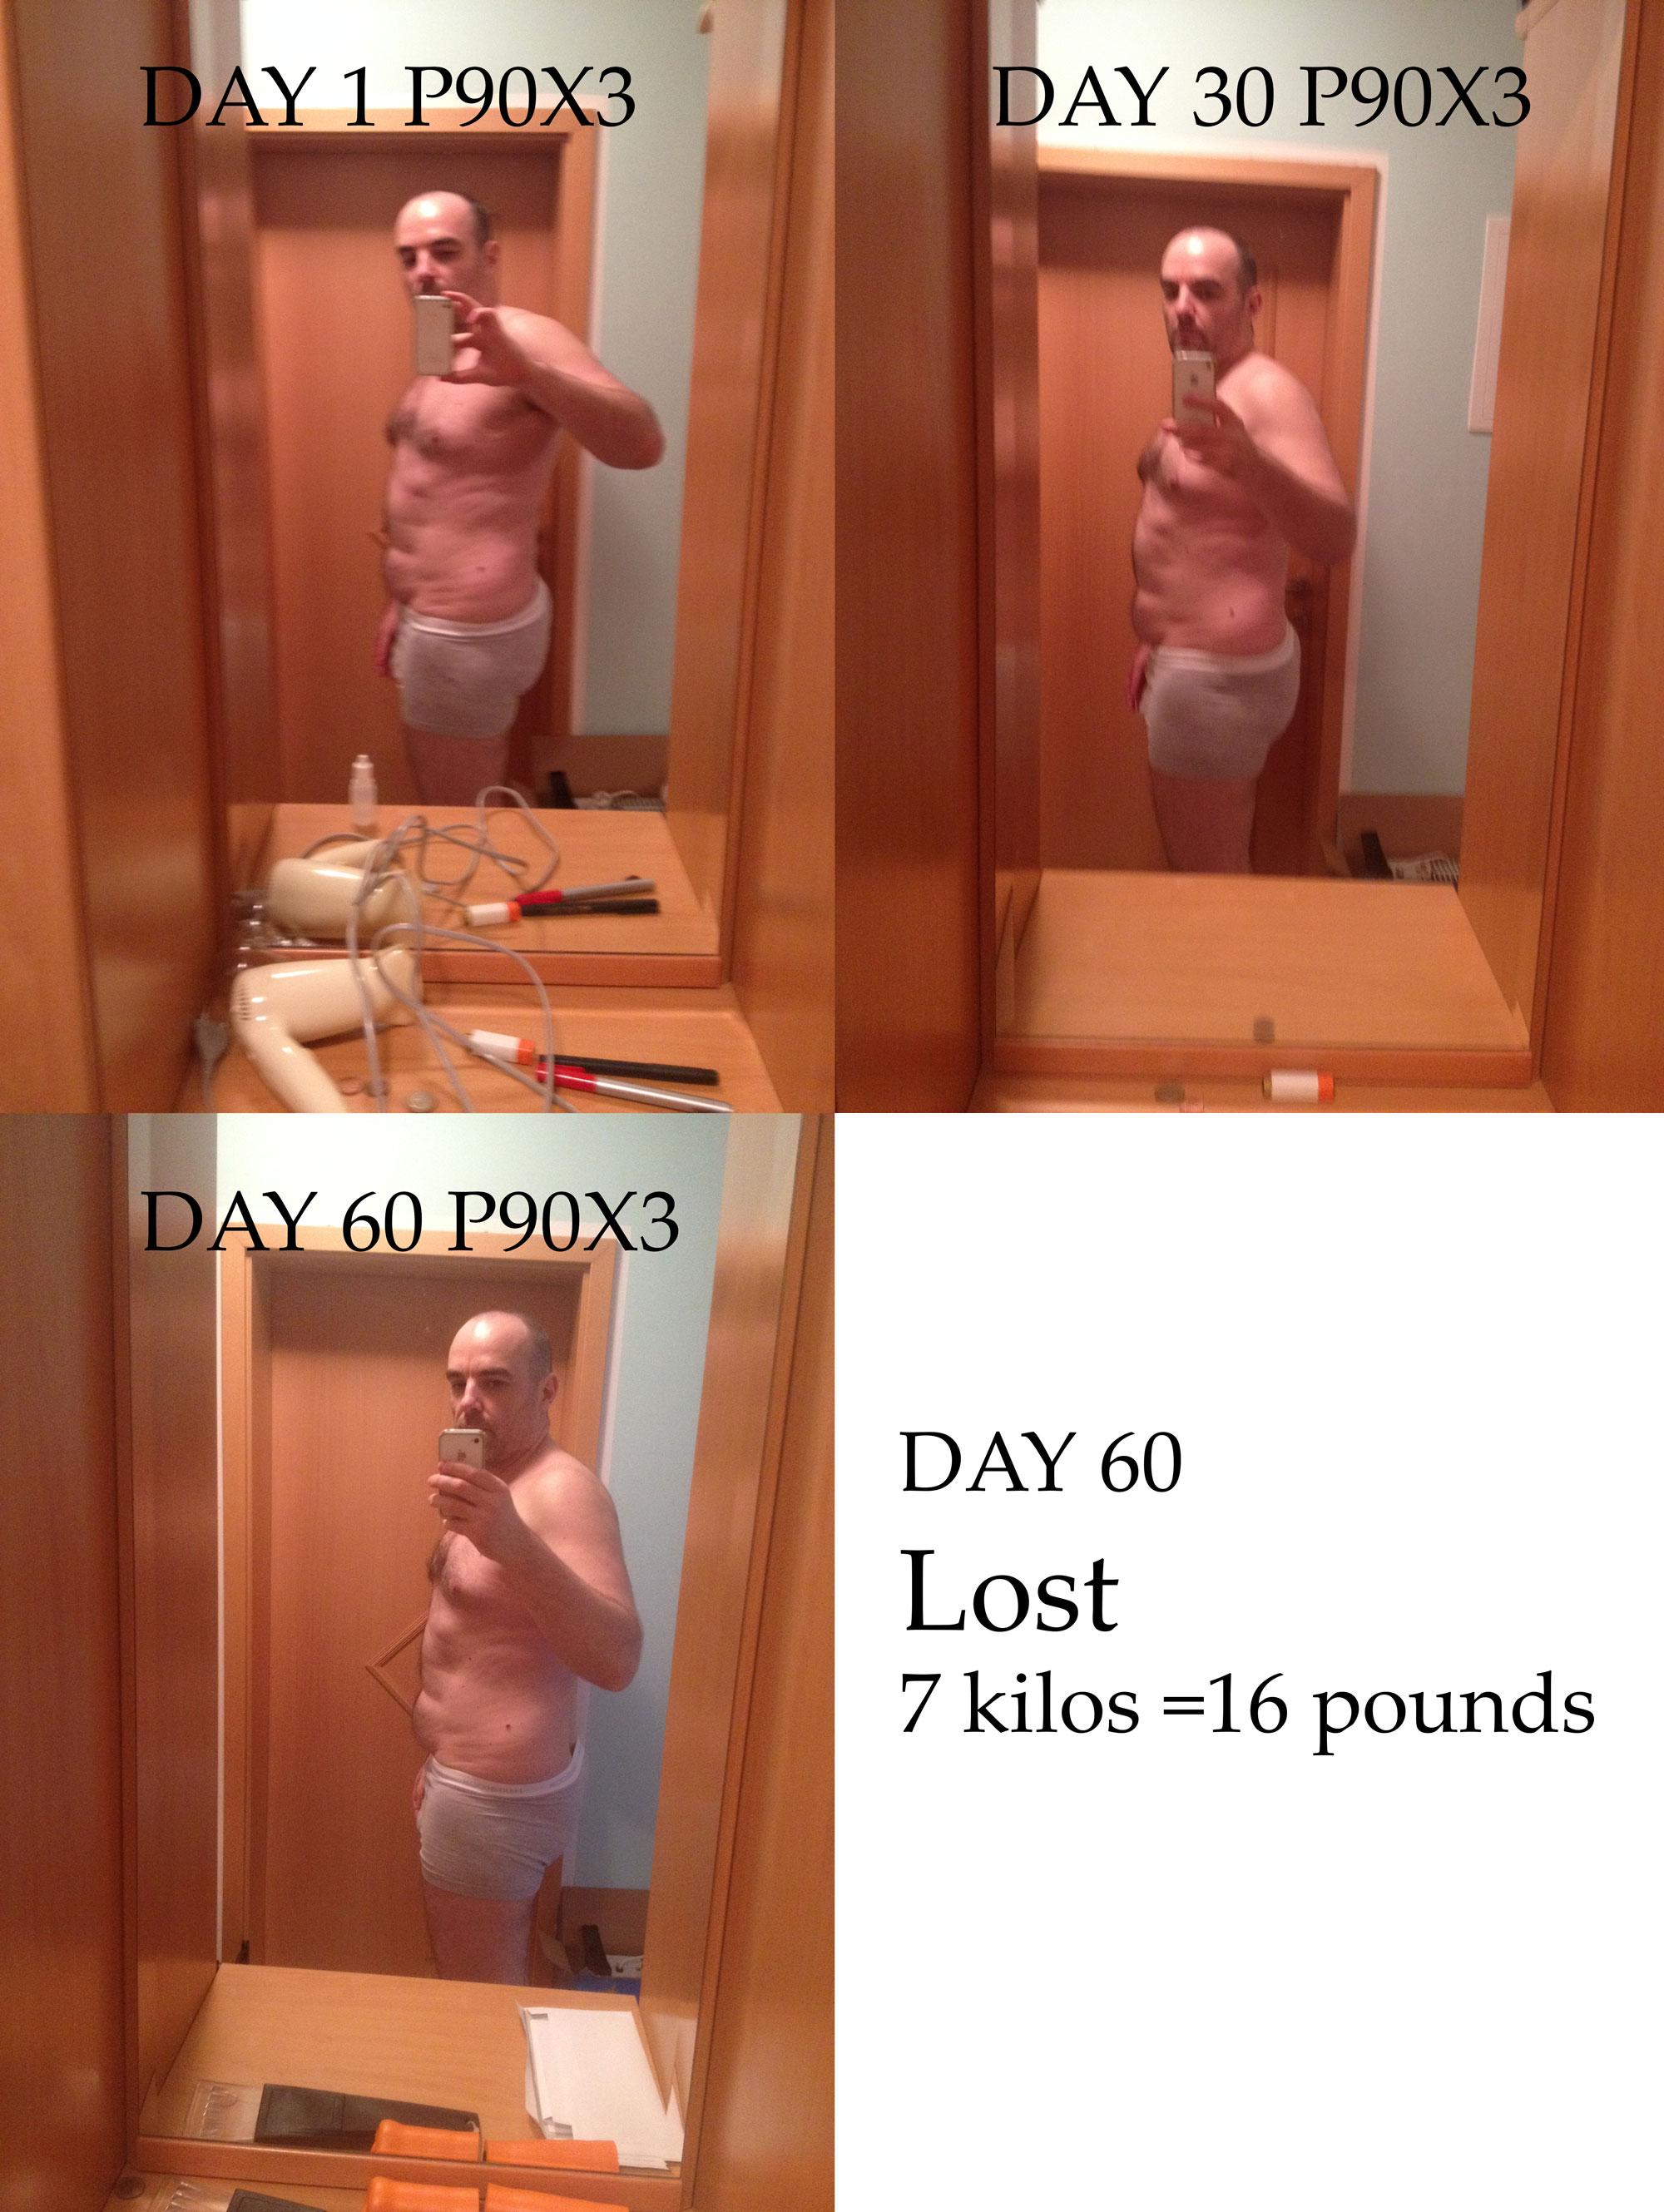 Results after 60 days of P90X3